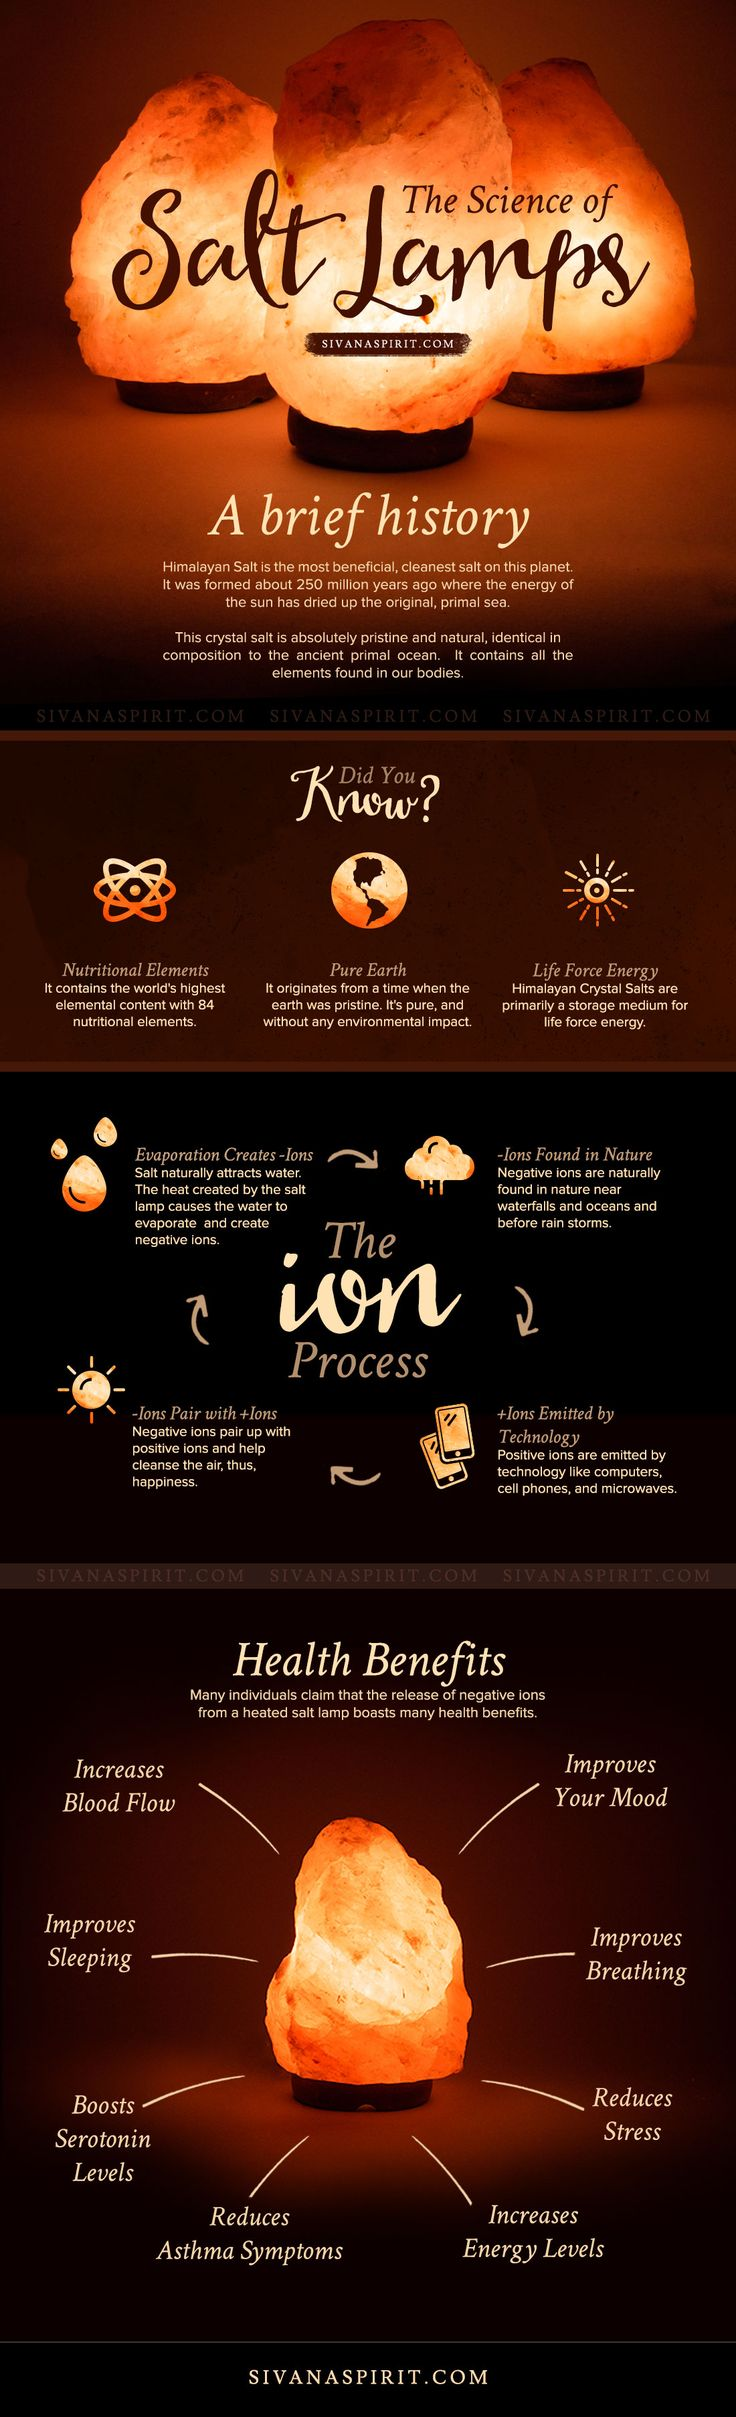 Salt Lamps Scientific Research : 1000+ ideas about Himalayan Salt Lamp on Pinterest Himalayan Rock Salt Lamp, Himalayan Salt ...